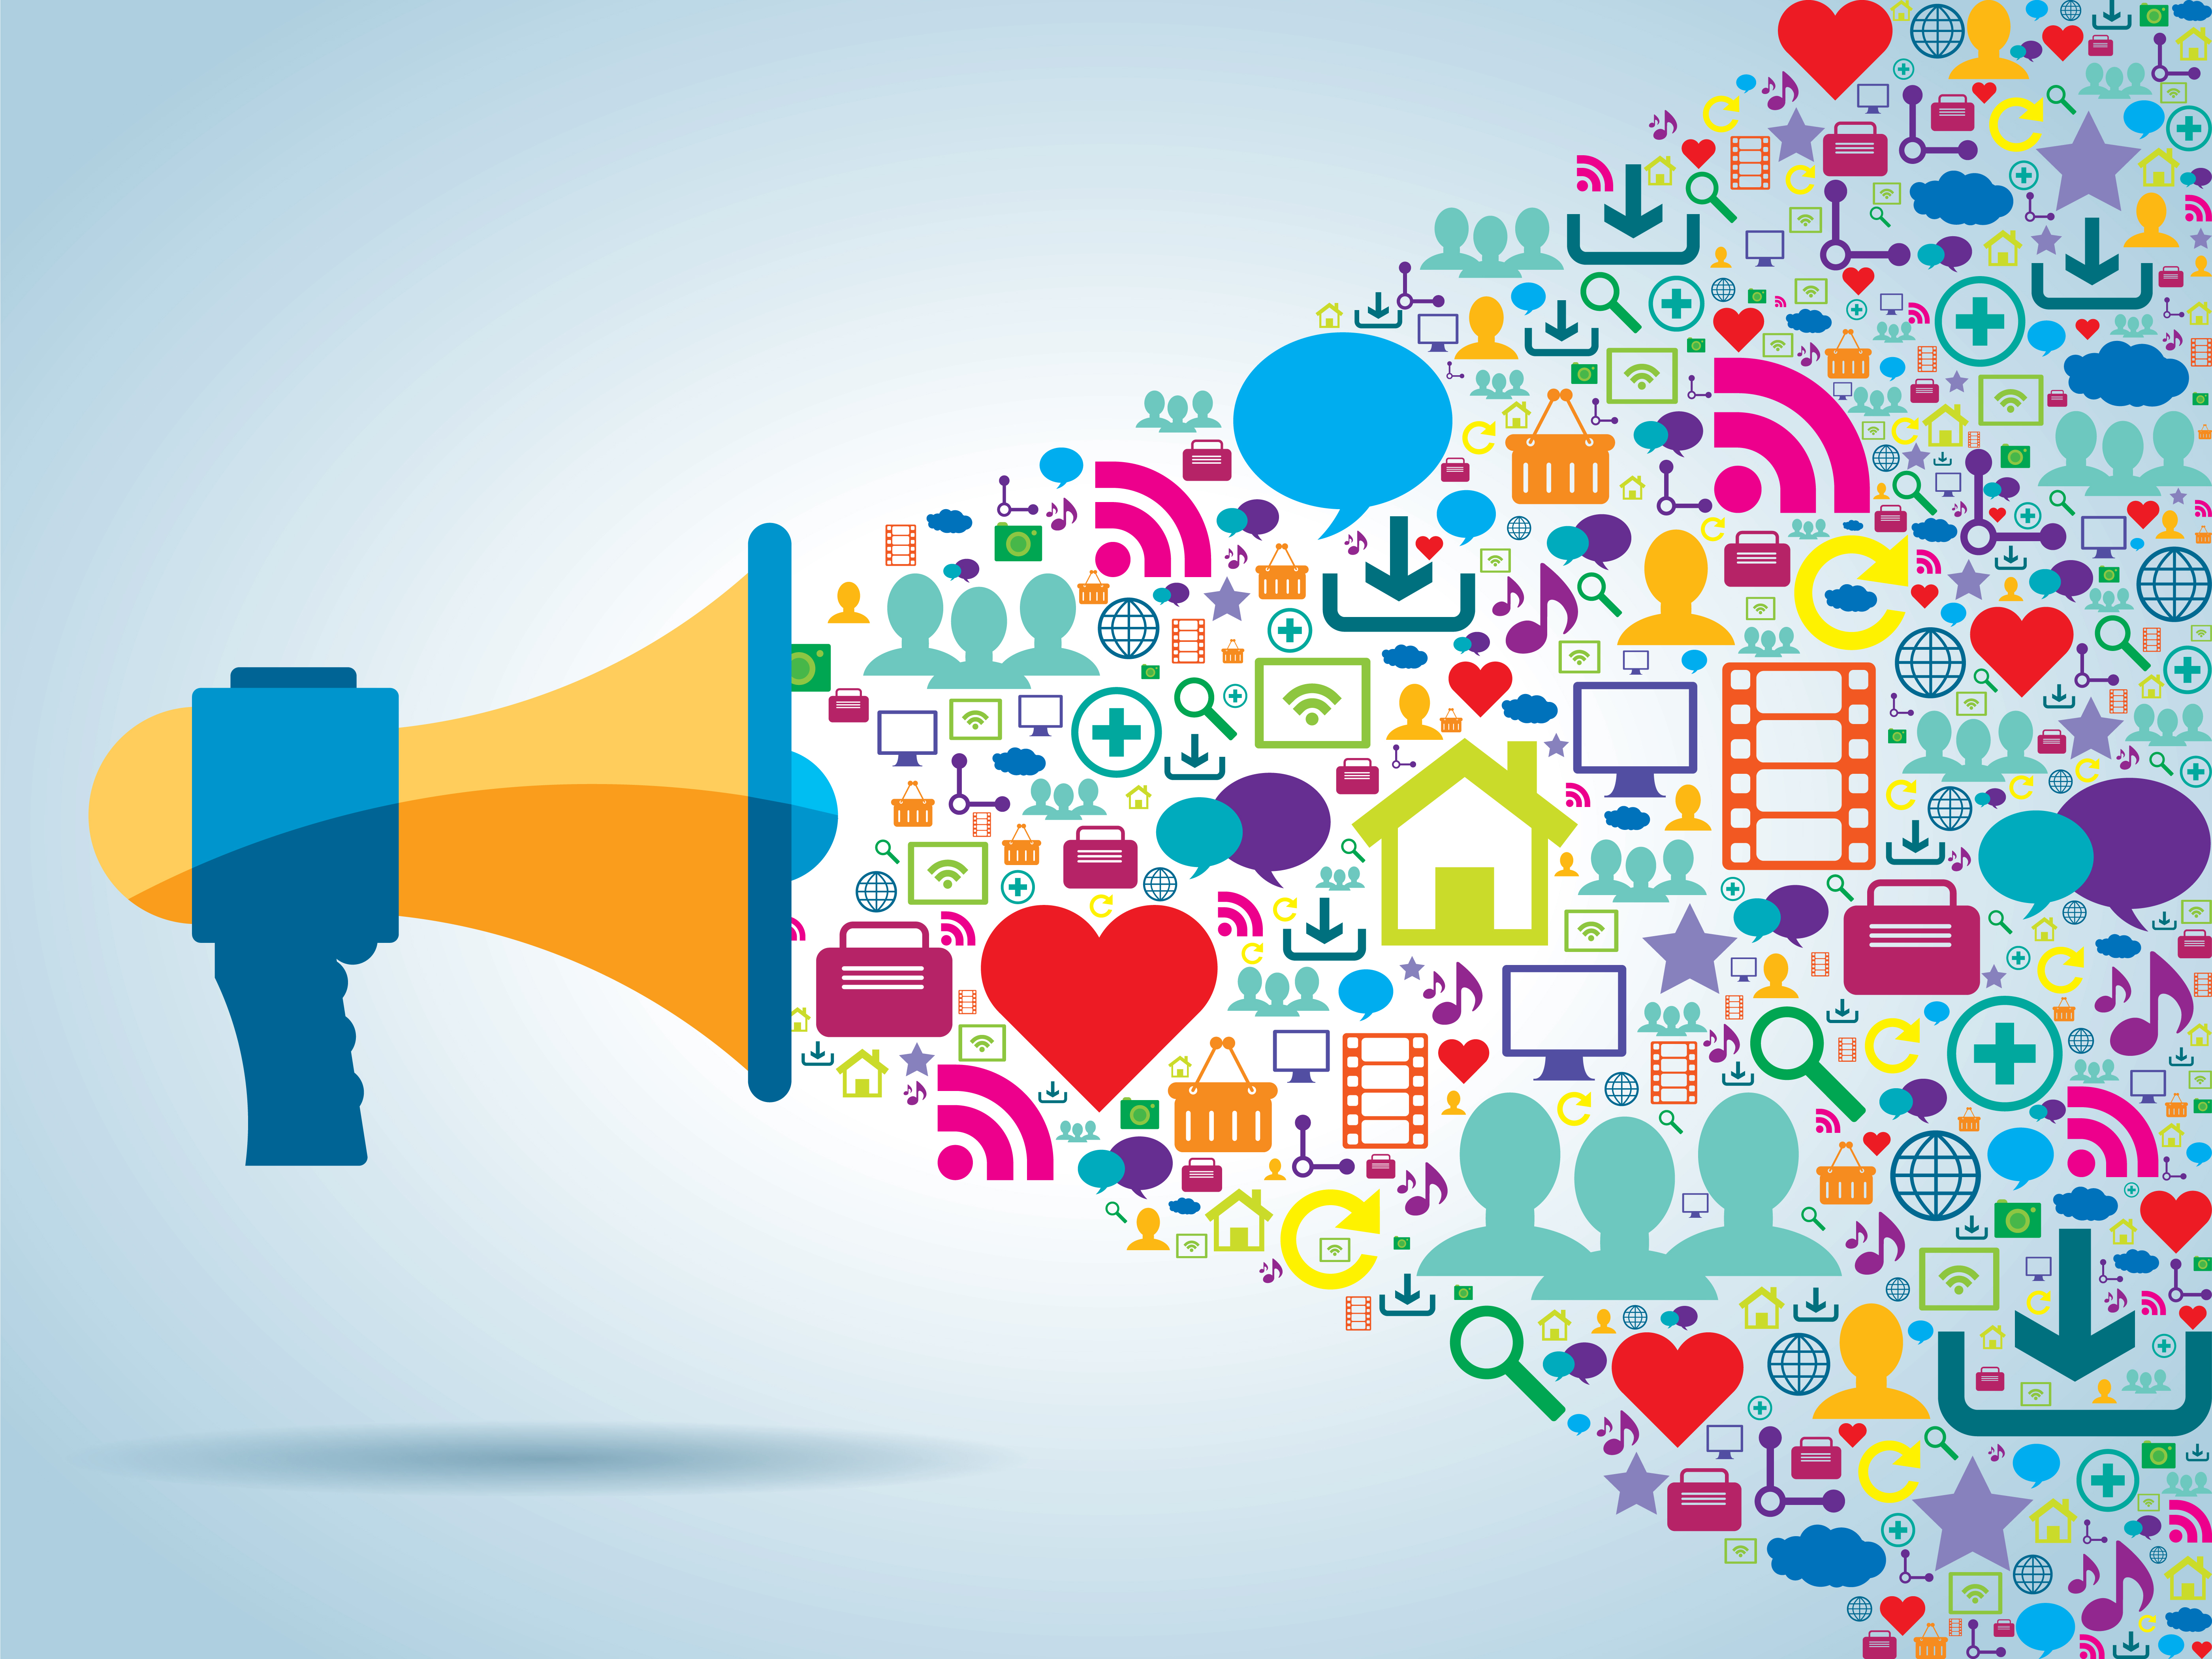 display advertising improves brand popularity and boosts up sales